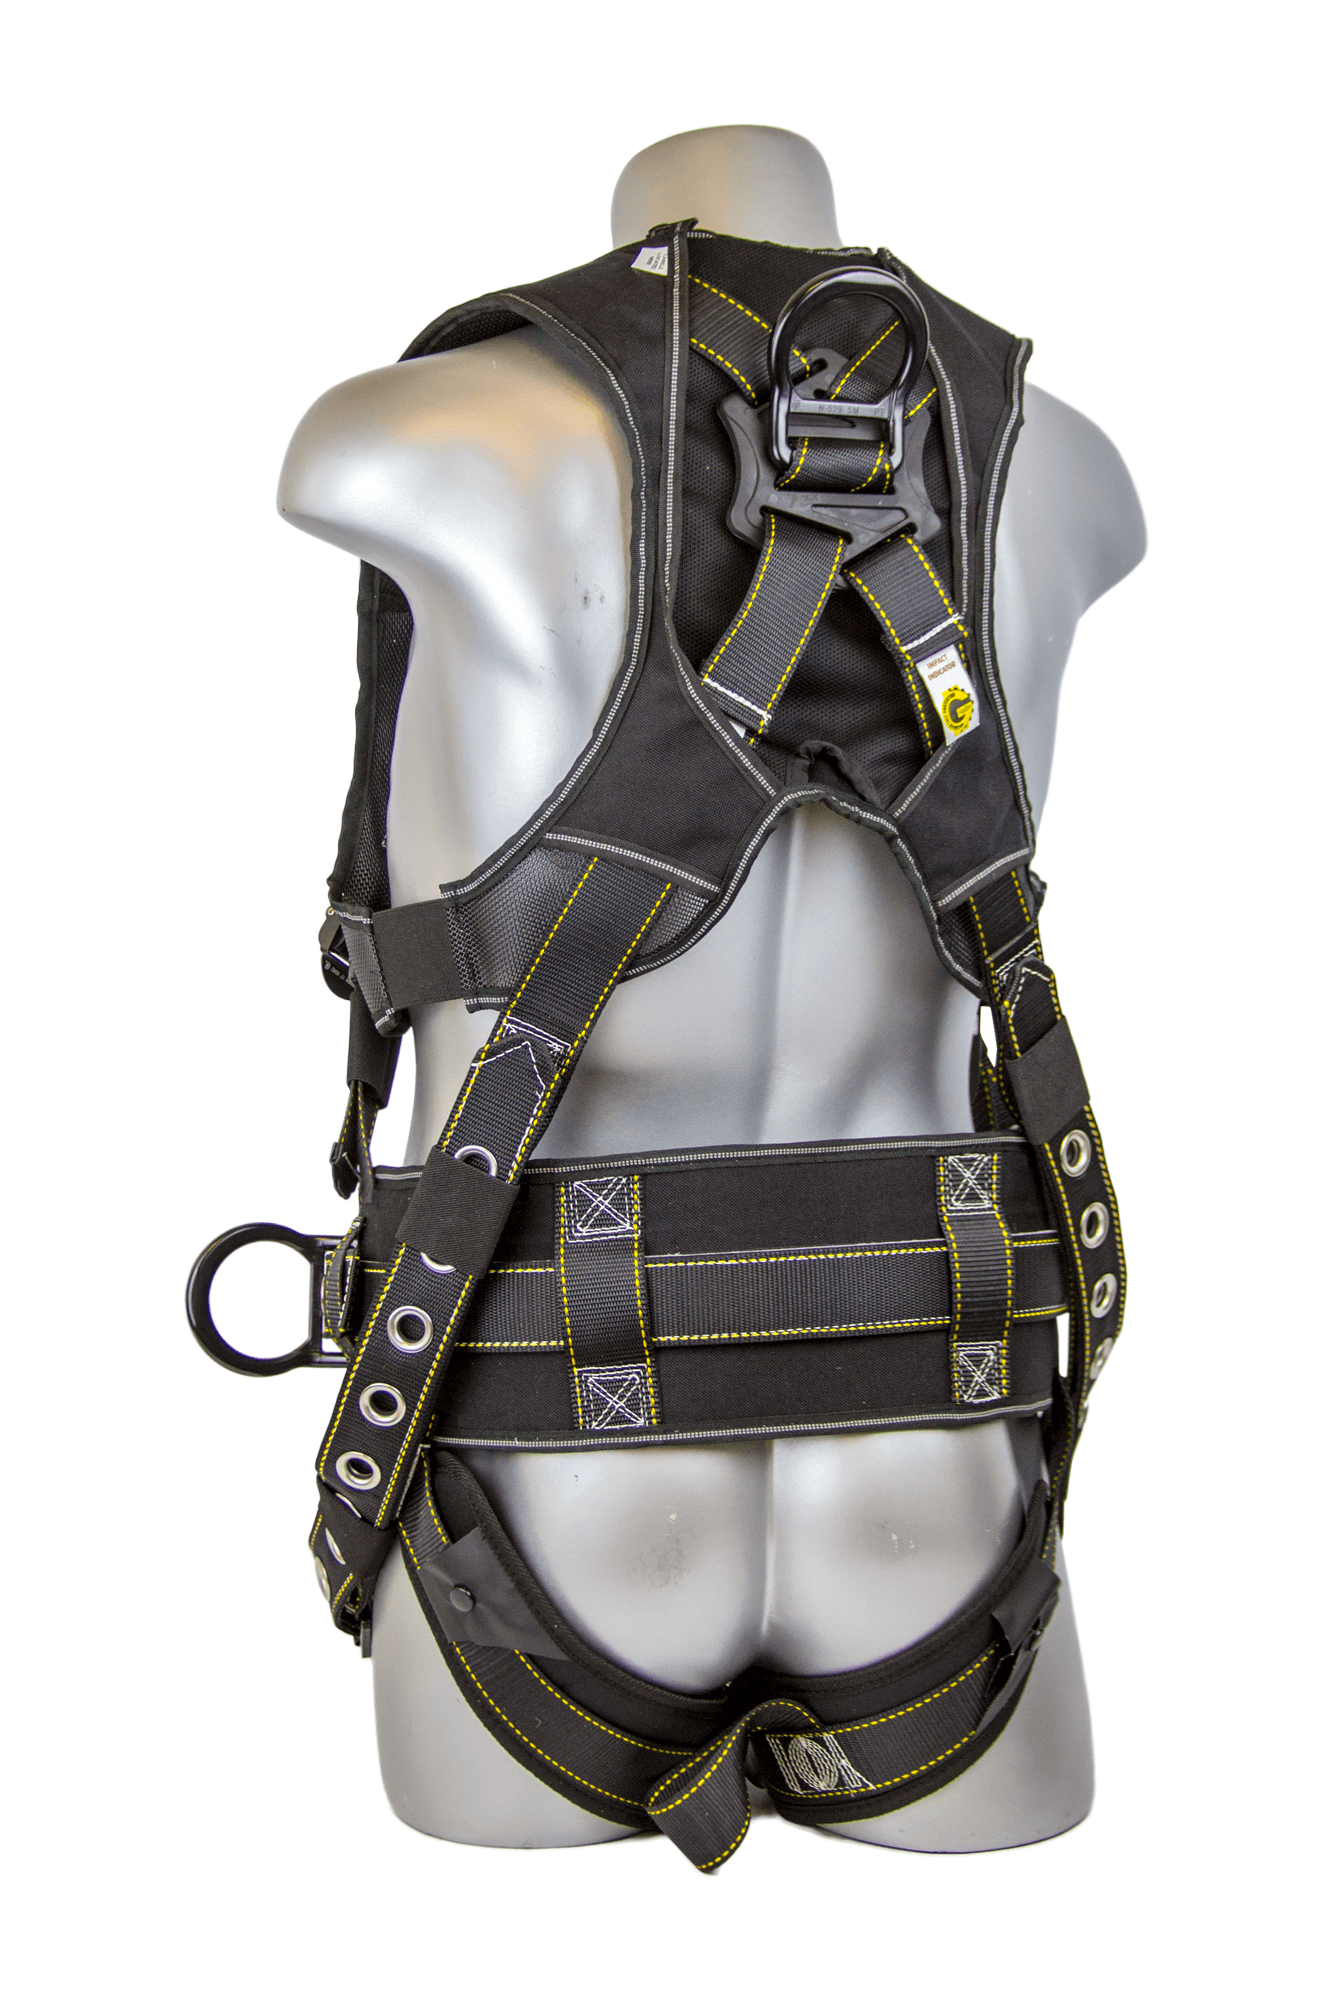 Halo Construction Harness w/ Cordura Ballistic Fabric, Quick-Connect Chest, Tongue-Buckle Legs, Side D-Rings, Back